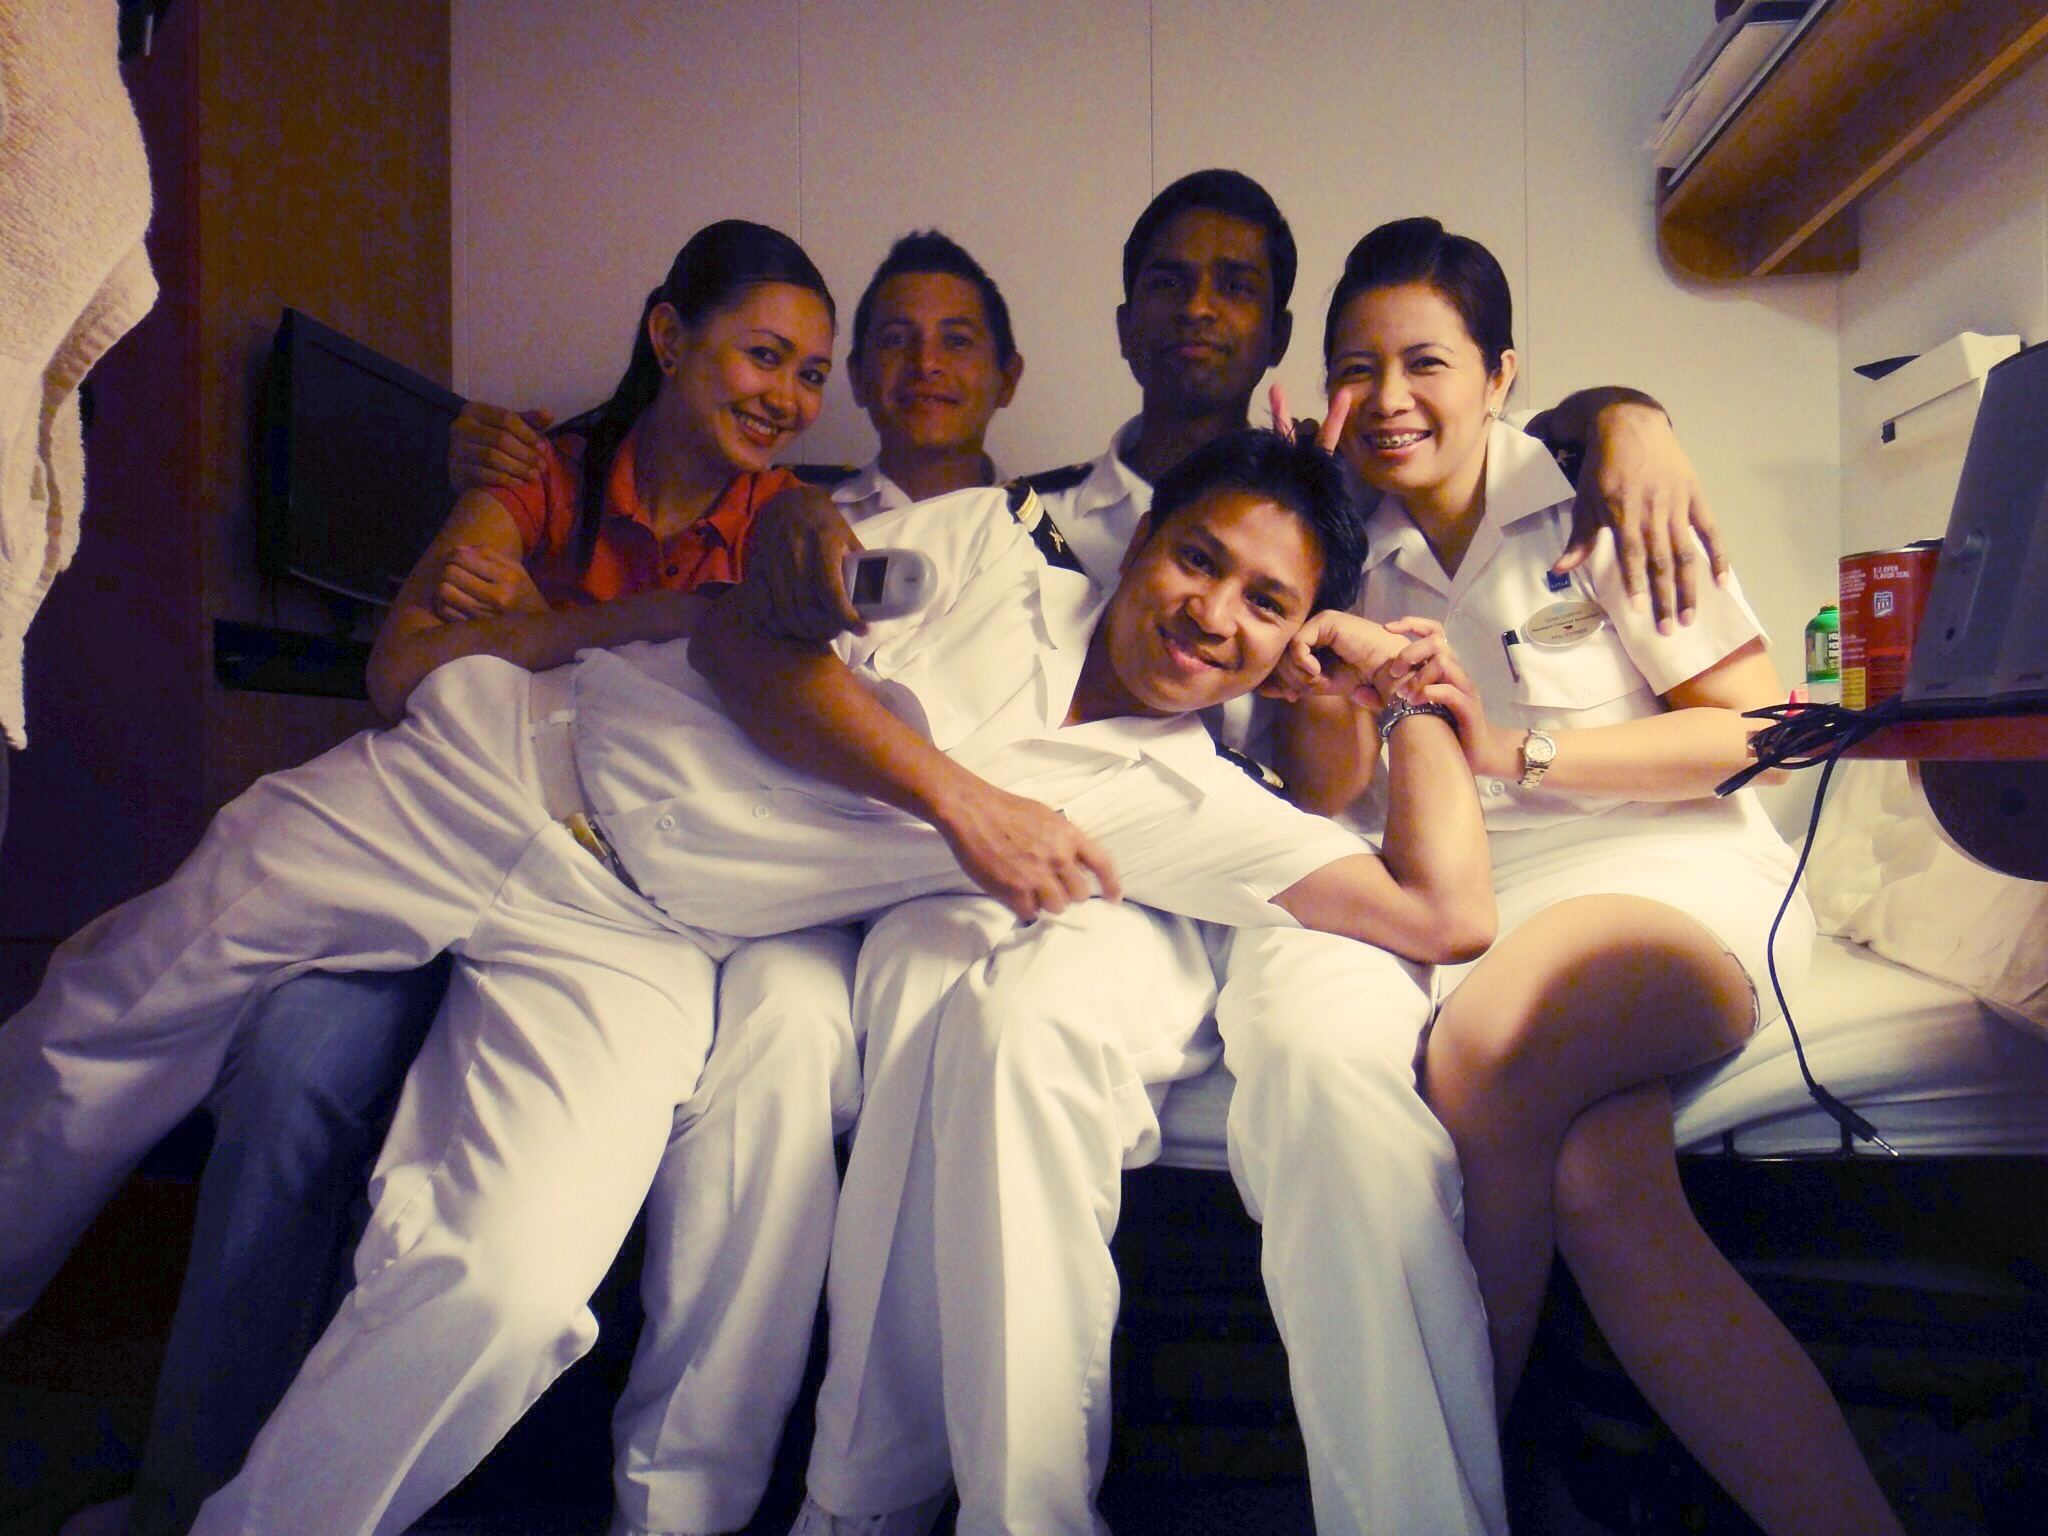 Cruise Staff members during a break